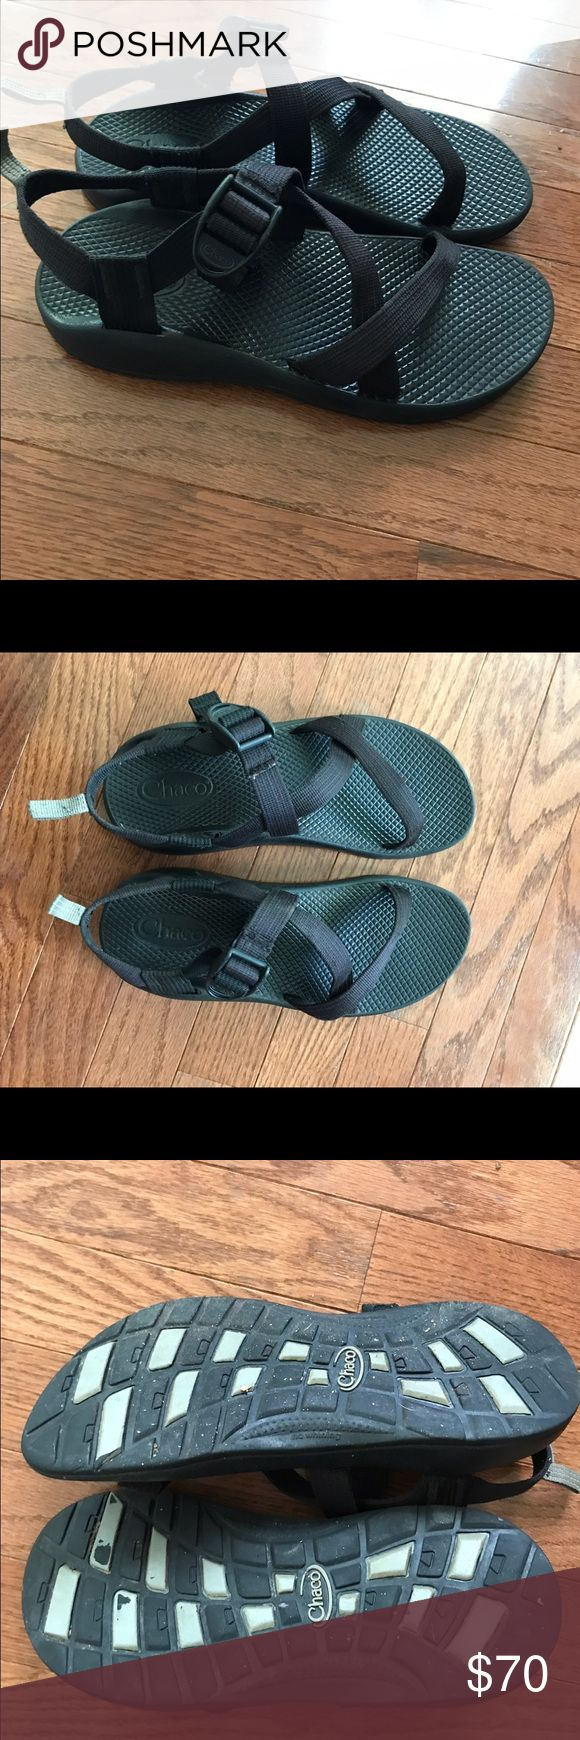 Chacos Size 8 black Chacos Chacos Shoes Sandals